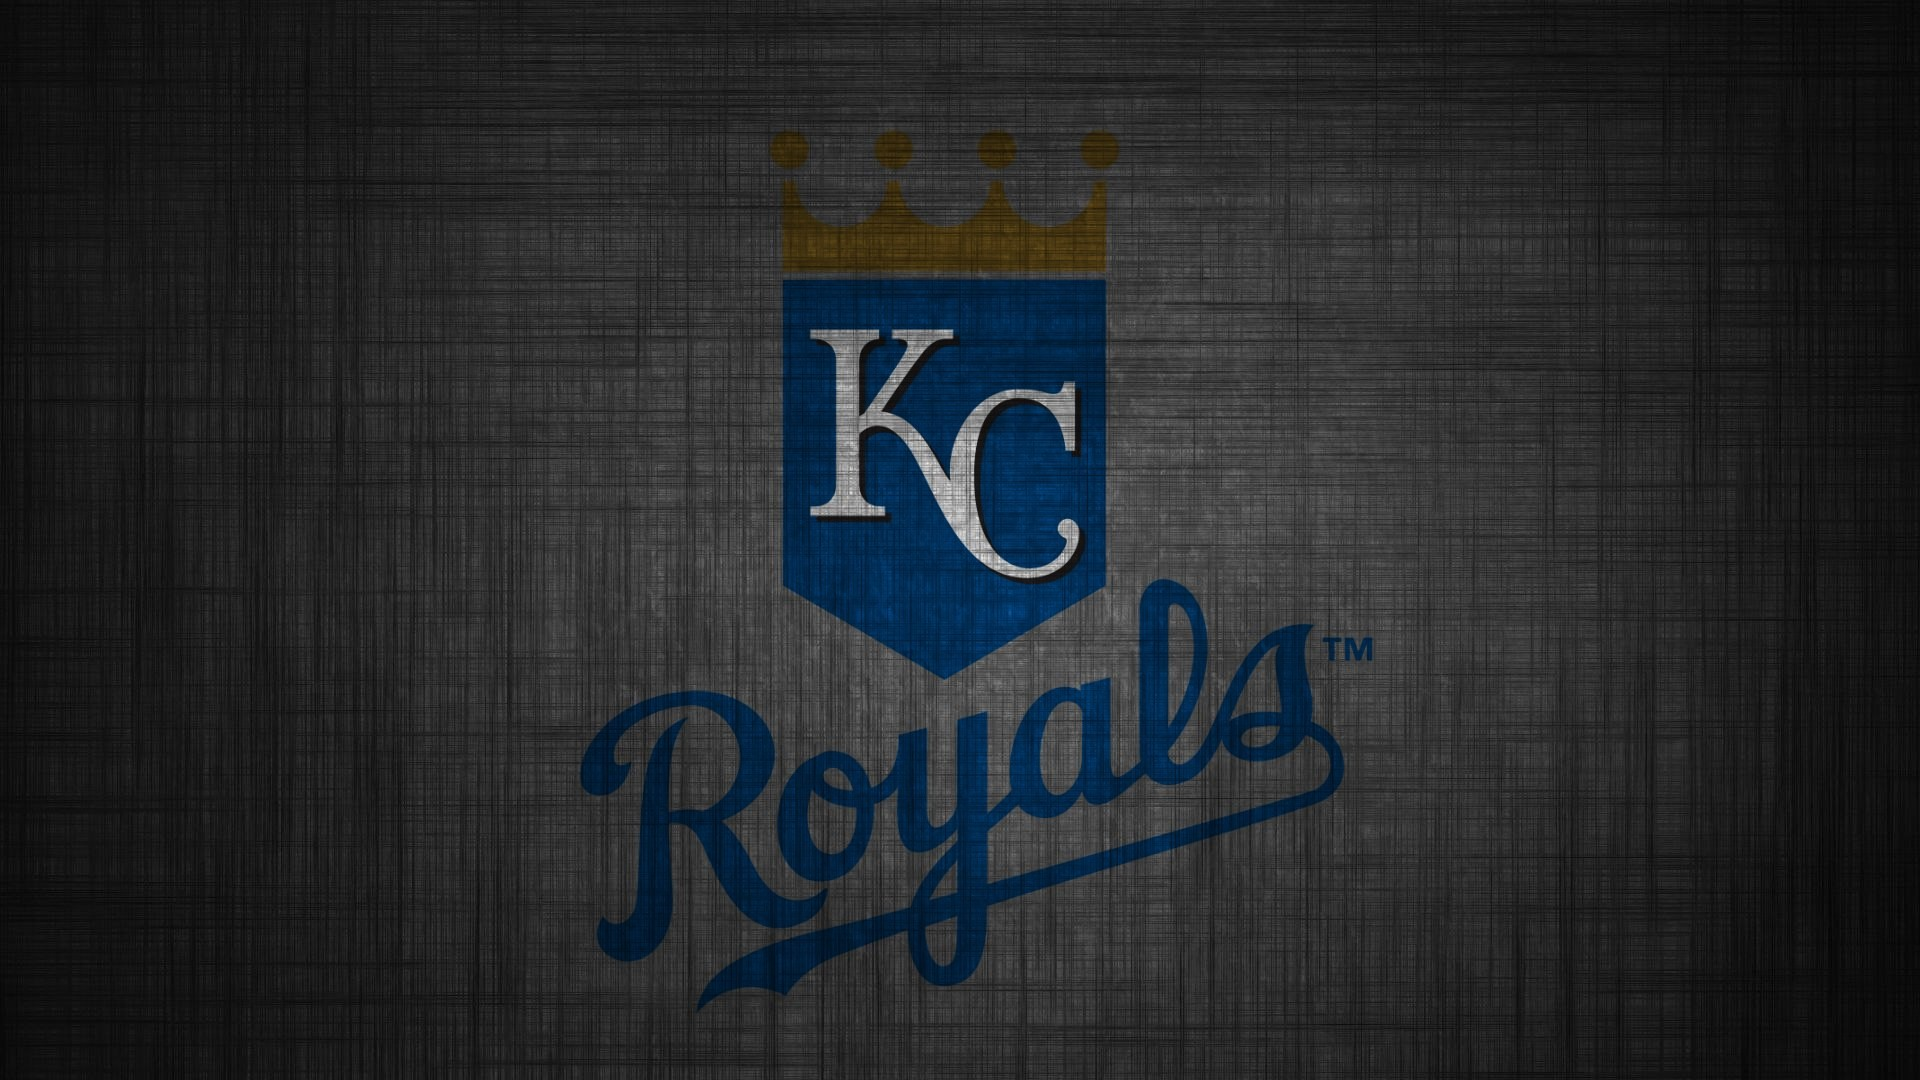 1920x1080 600x886 px; KC Royals IPhone Wallpaper for PC | Full HD Pictures